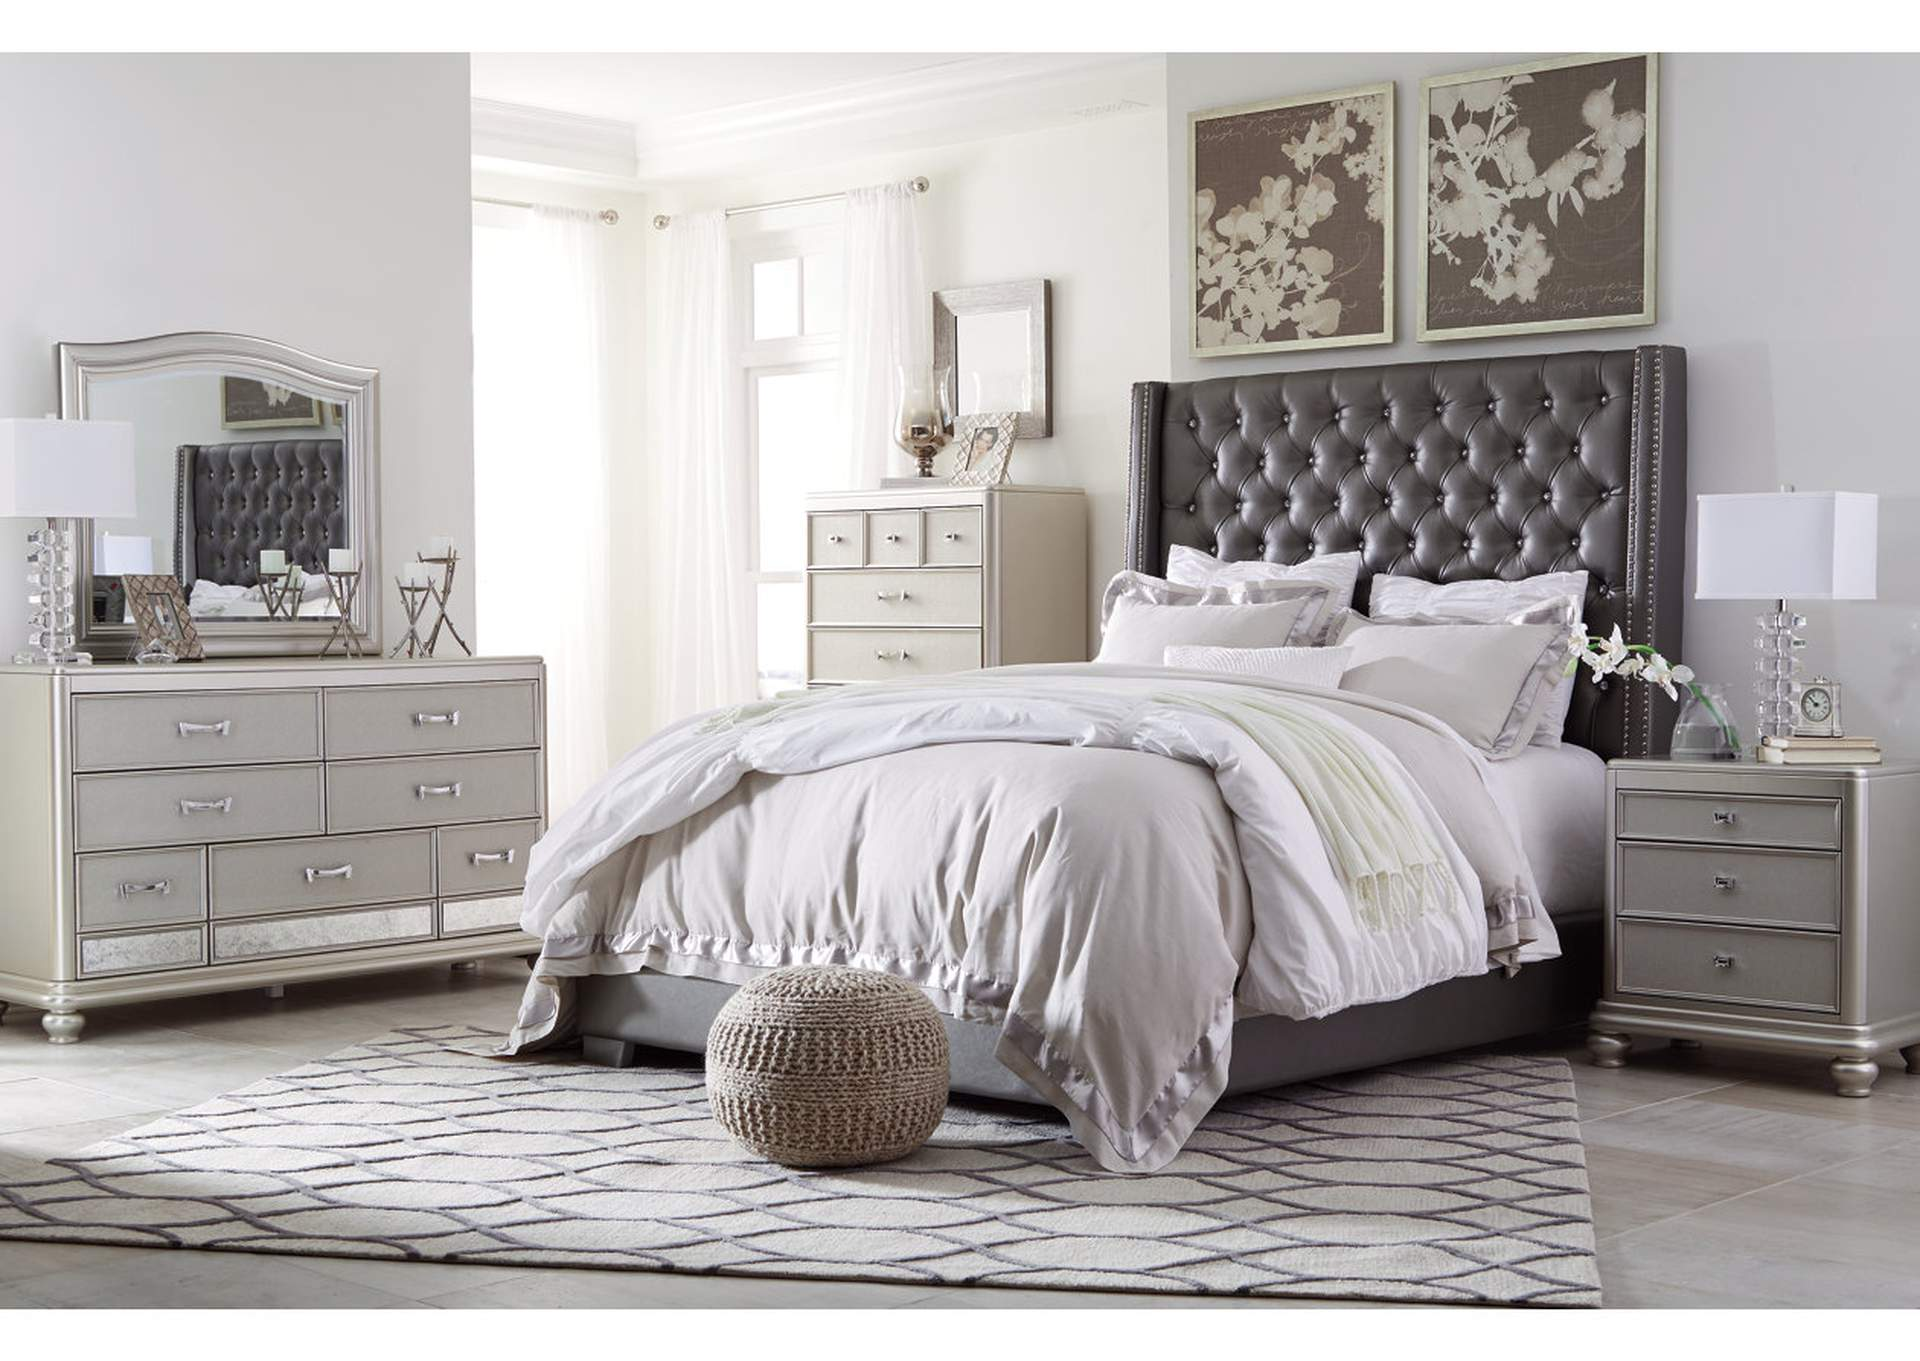 Coralayne Gray California King Upholstered Bed w/Dresser, Mirror & Drawer Chest,Signature Design By Ashley